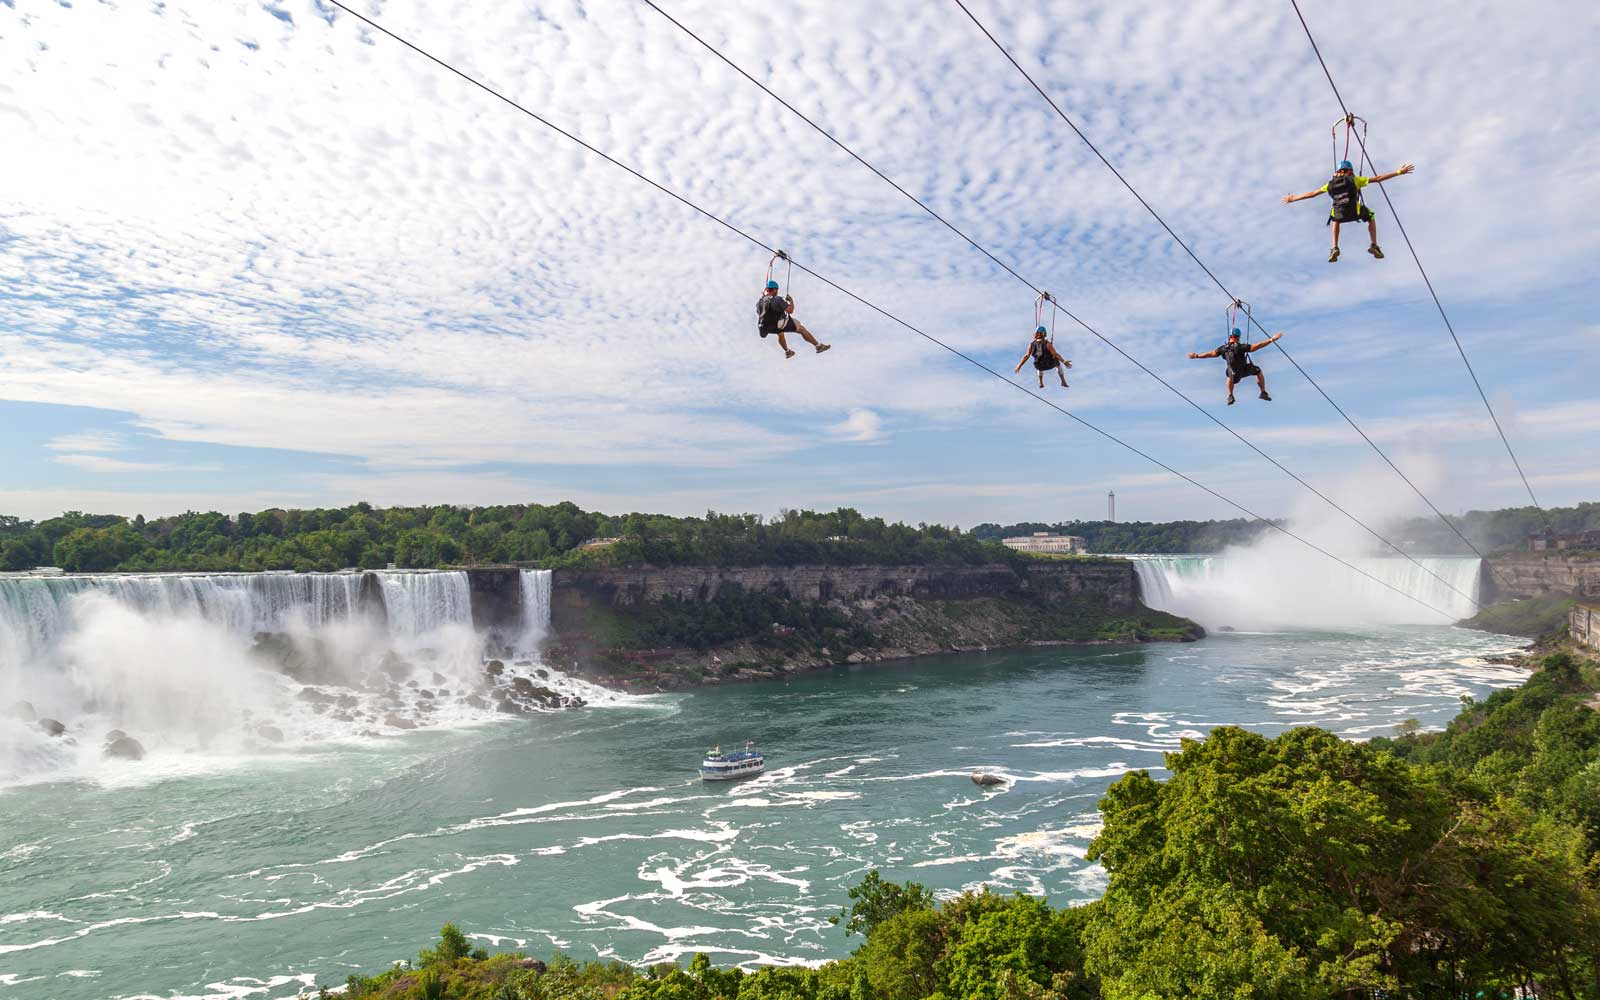 Fly Across Niagara Falls on an Exhilarating Zip Line This Summer